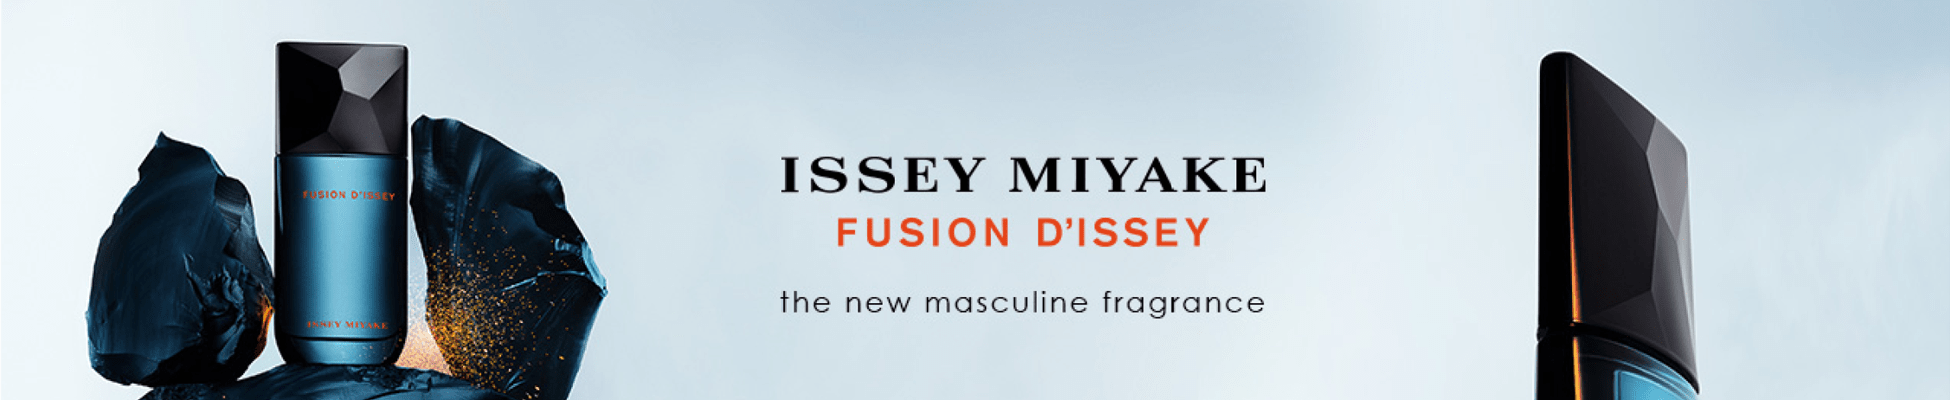 Fusiond'Issey